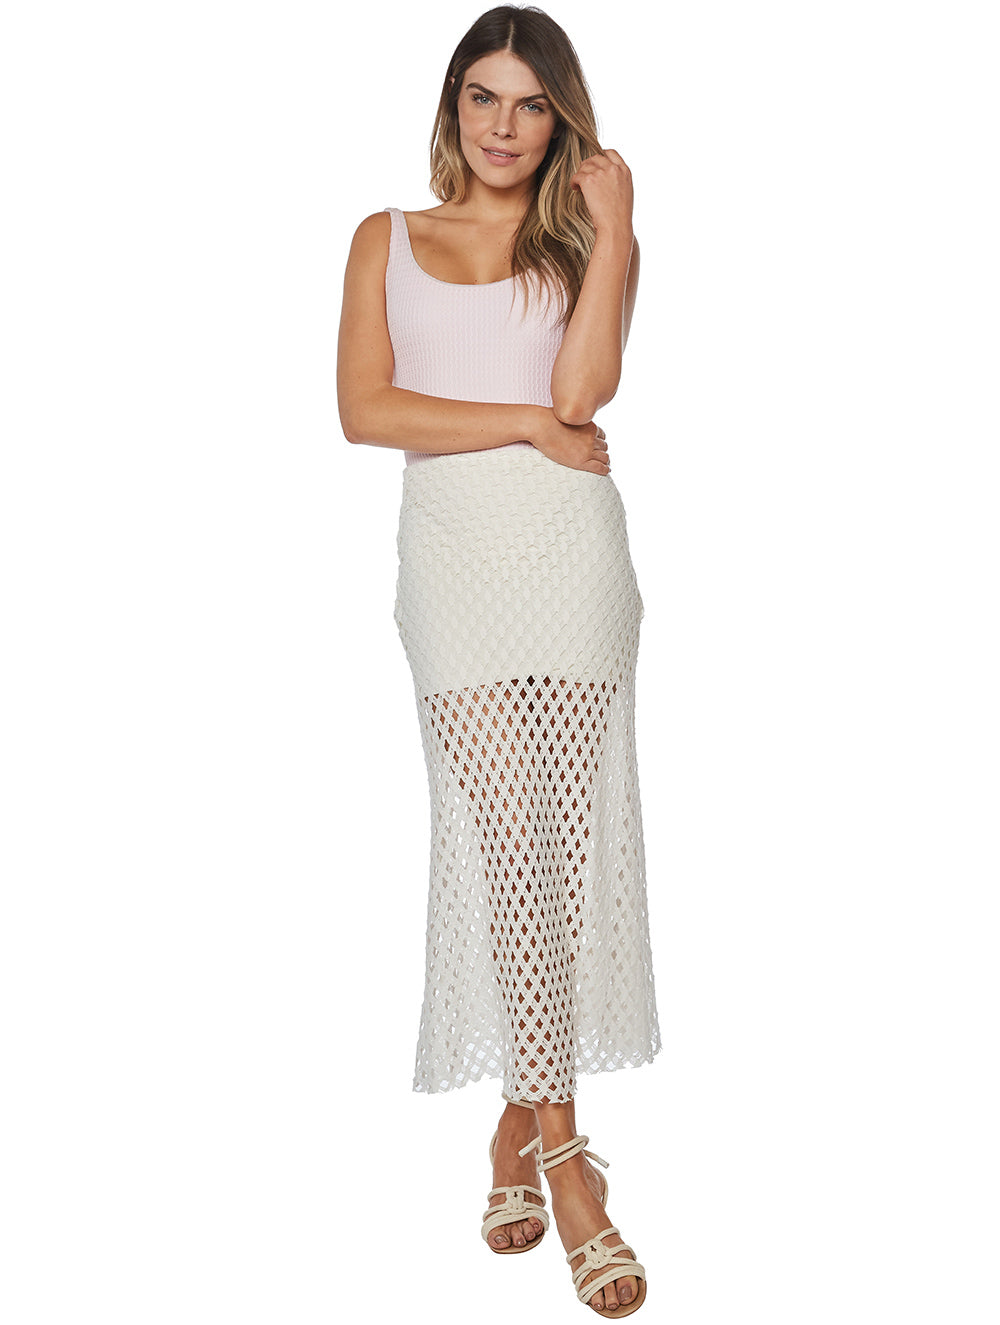 Solid-Color Netting Midi Skirt